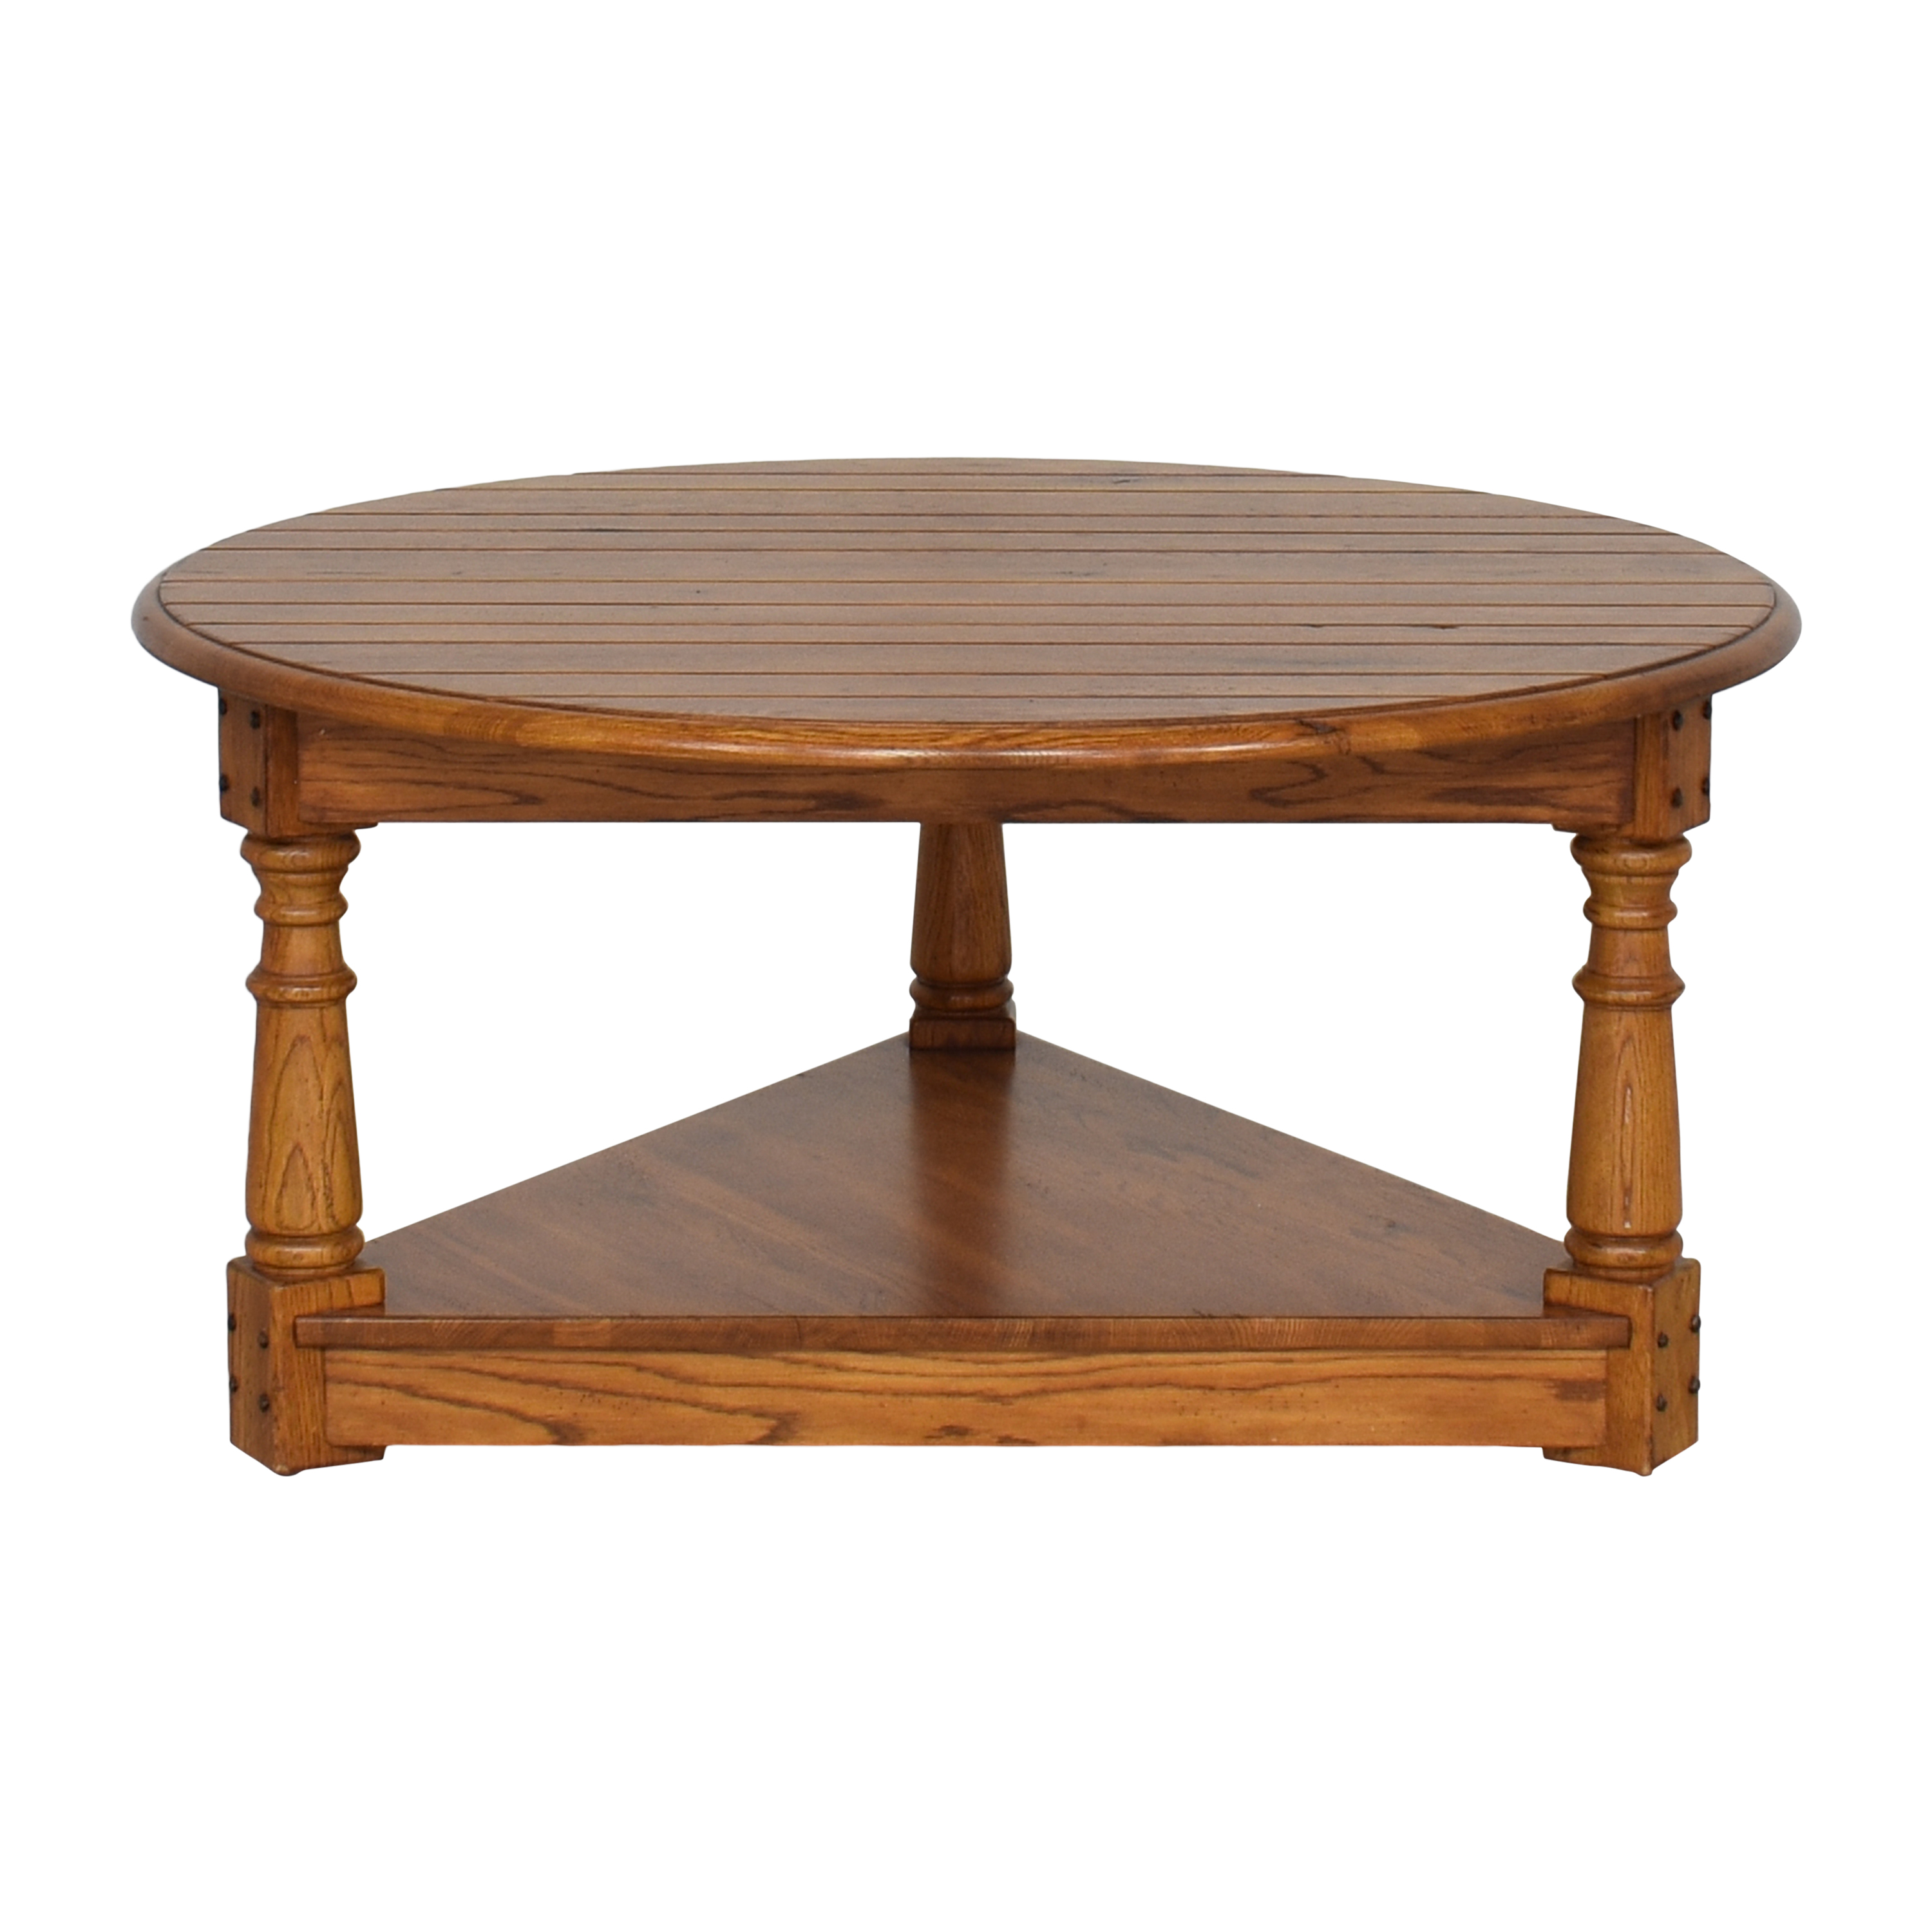 Vintage-Style Round Coffee Table ct